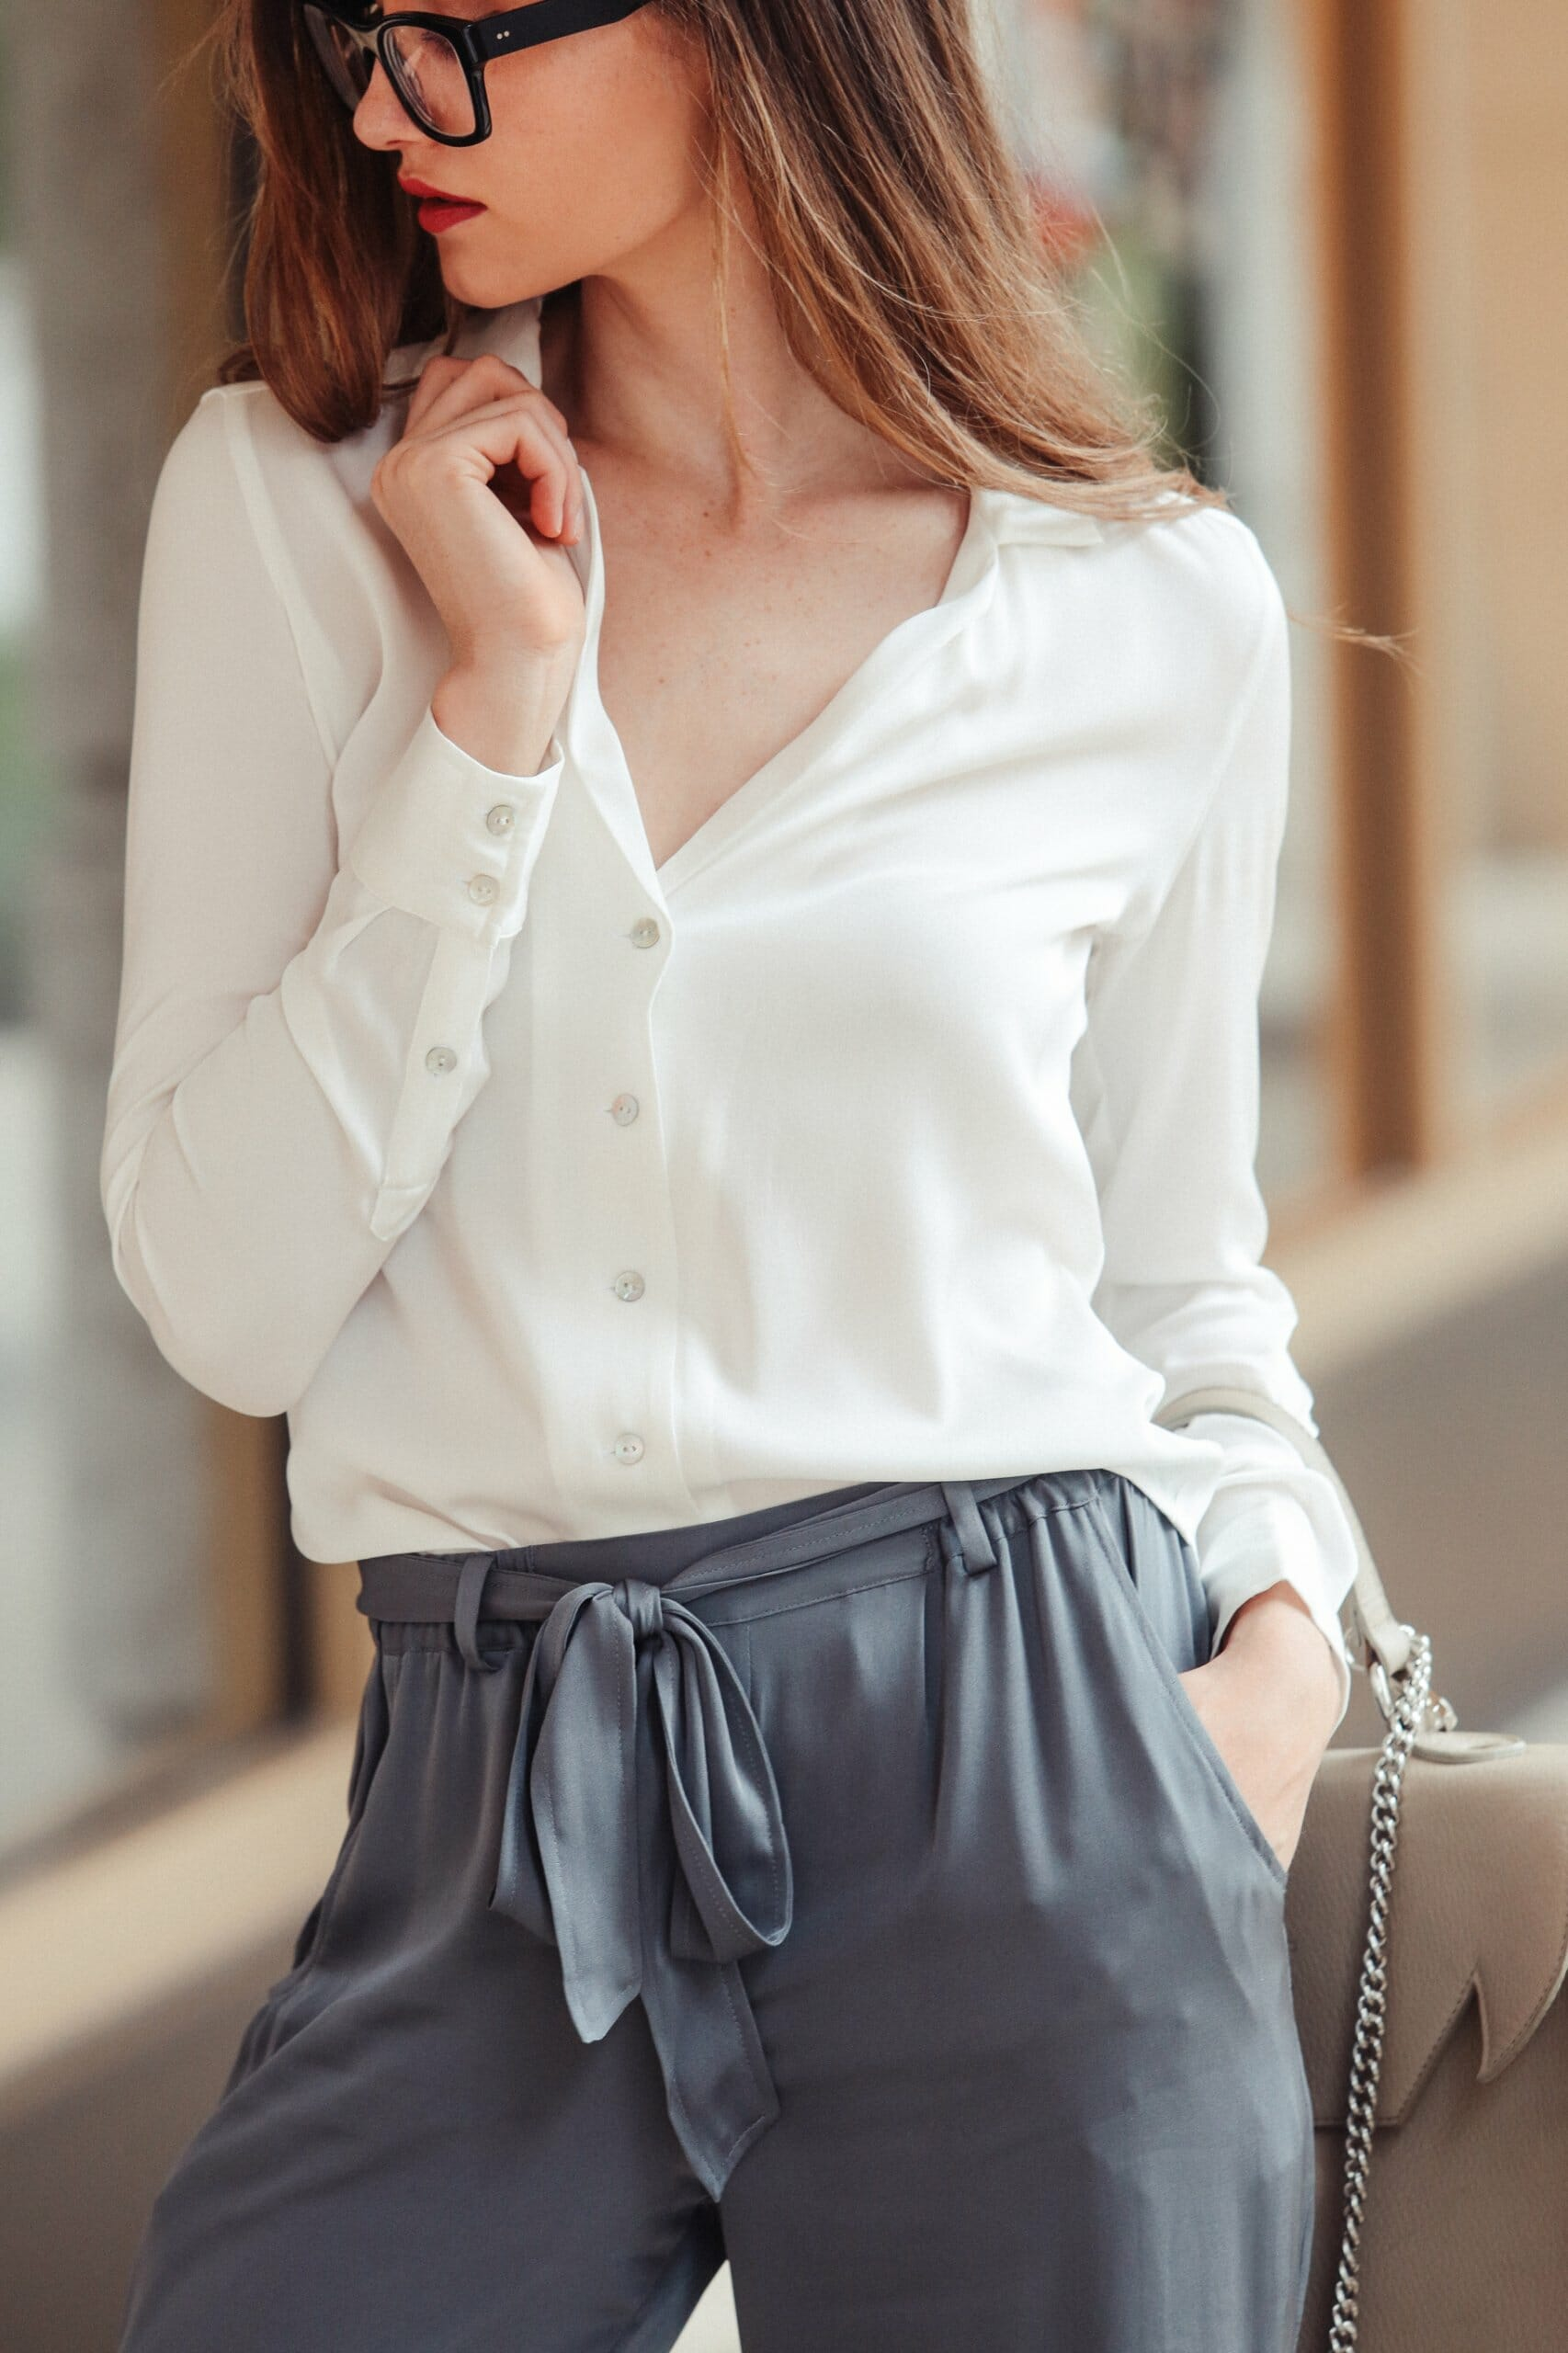 Summer outfits for hot season